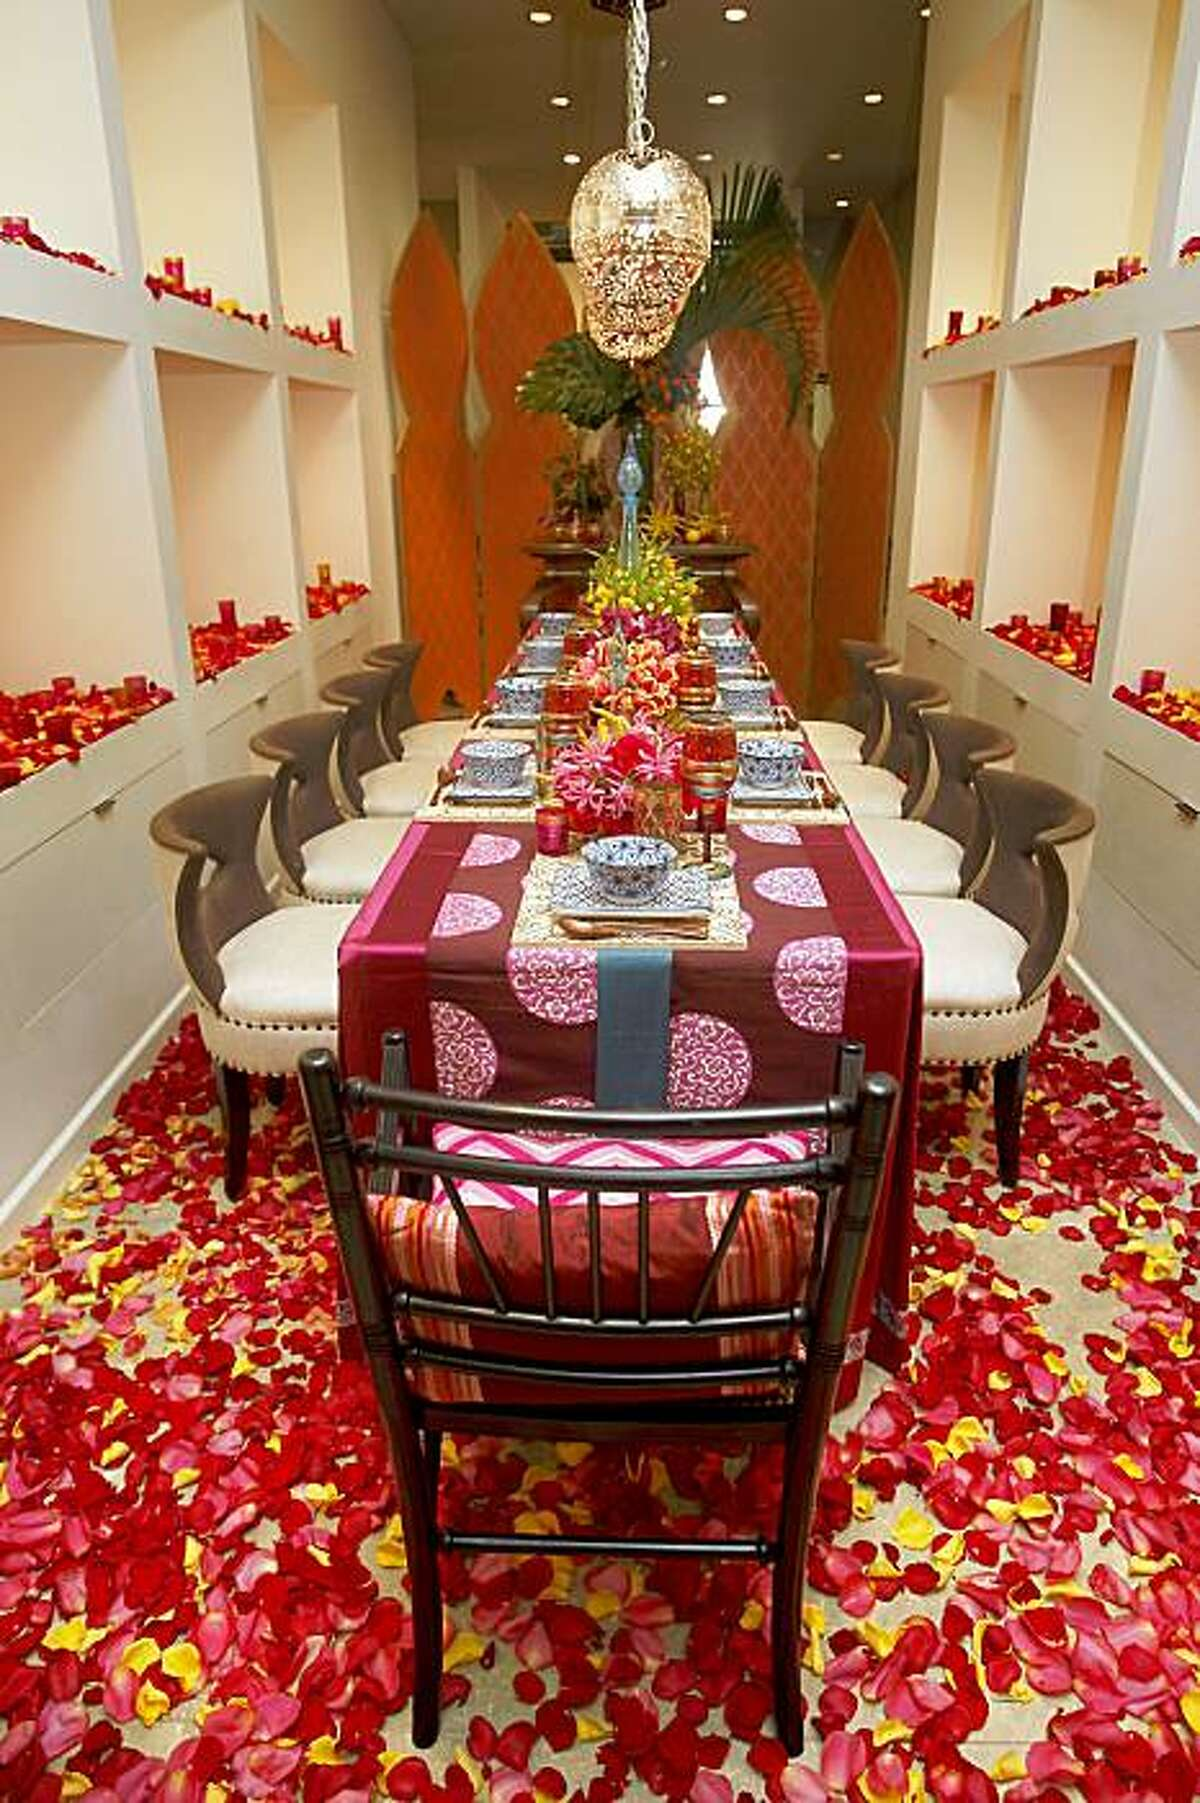 A table design by Patrice Bevans in San Francisco, Calif., on Wednesday, November 18, 2009. The San Francisco Design Center hosts Dining By Design, a benefit event that showcases over-the-top tablescapes by Bay Area designers.